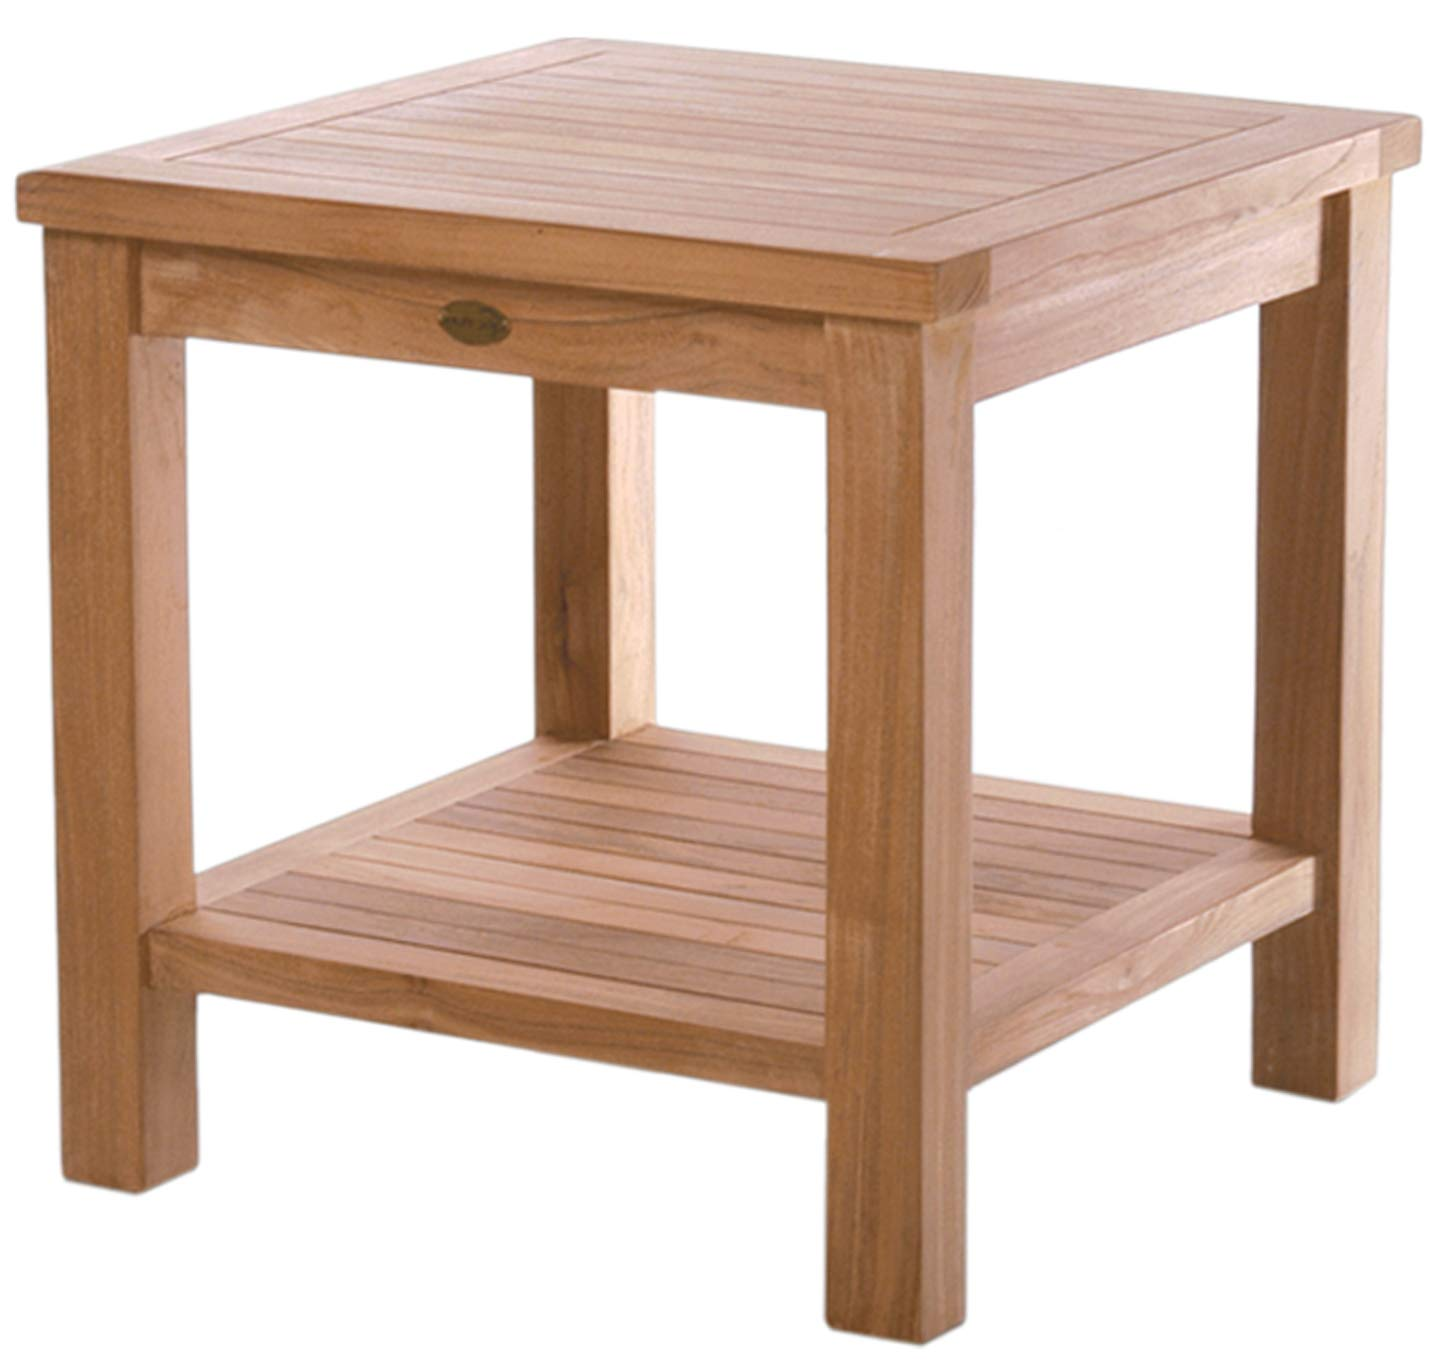 Teak Tundra Outdoor Side Table with Shelf Made by Chic Teak from A-Grade Teak Wood